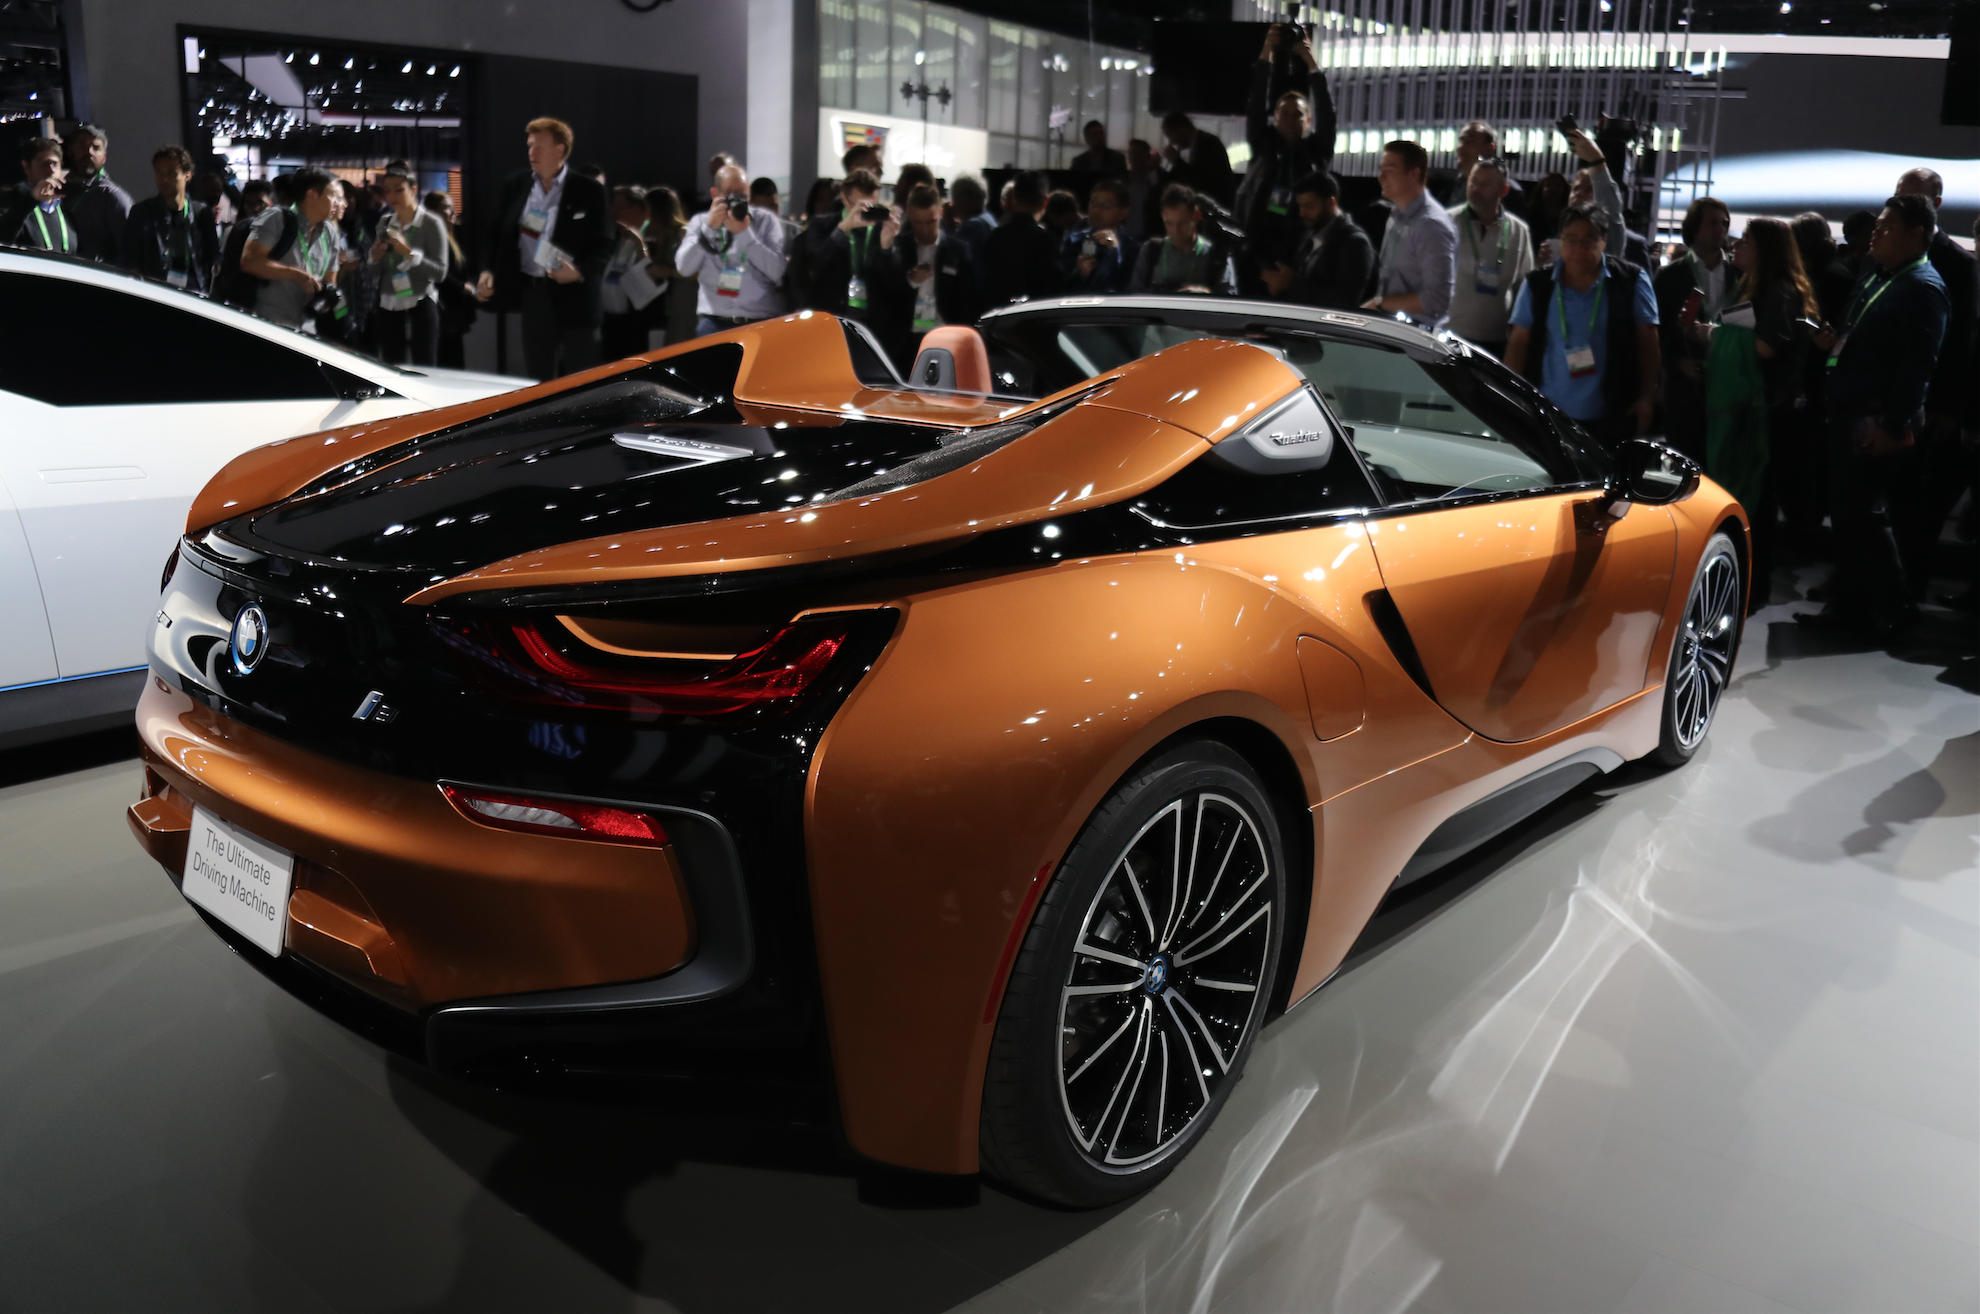 2019 Bmw I8 Roadster This Is It With Slightly More Horsepower And